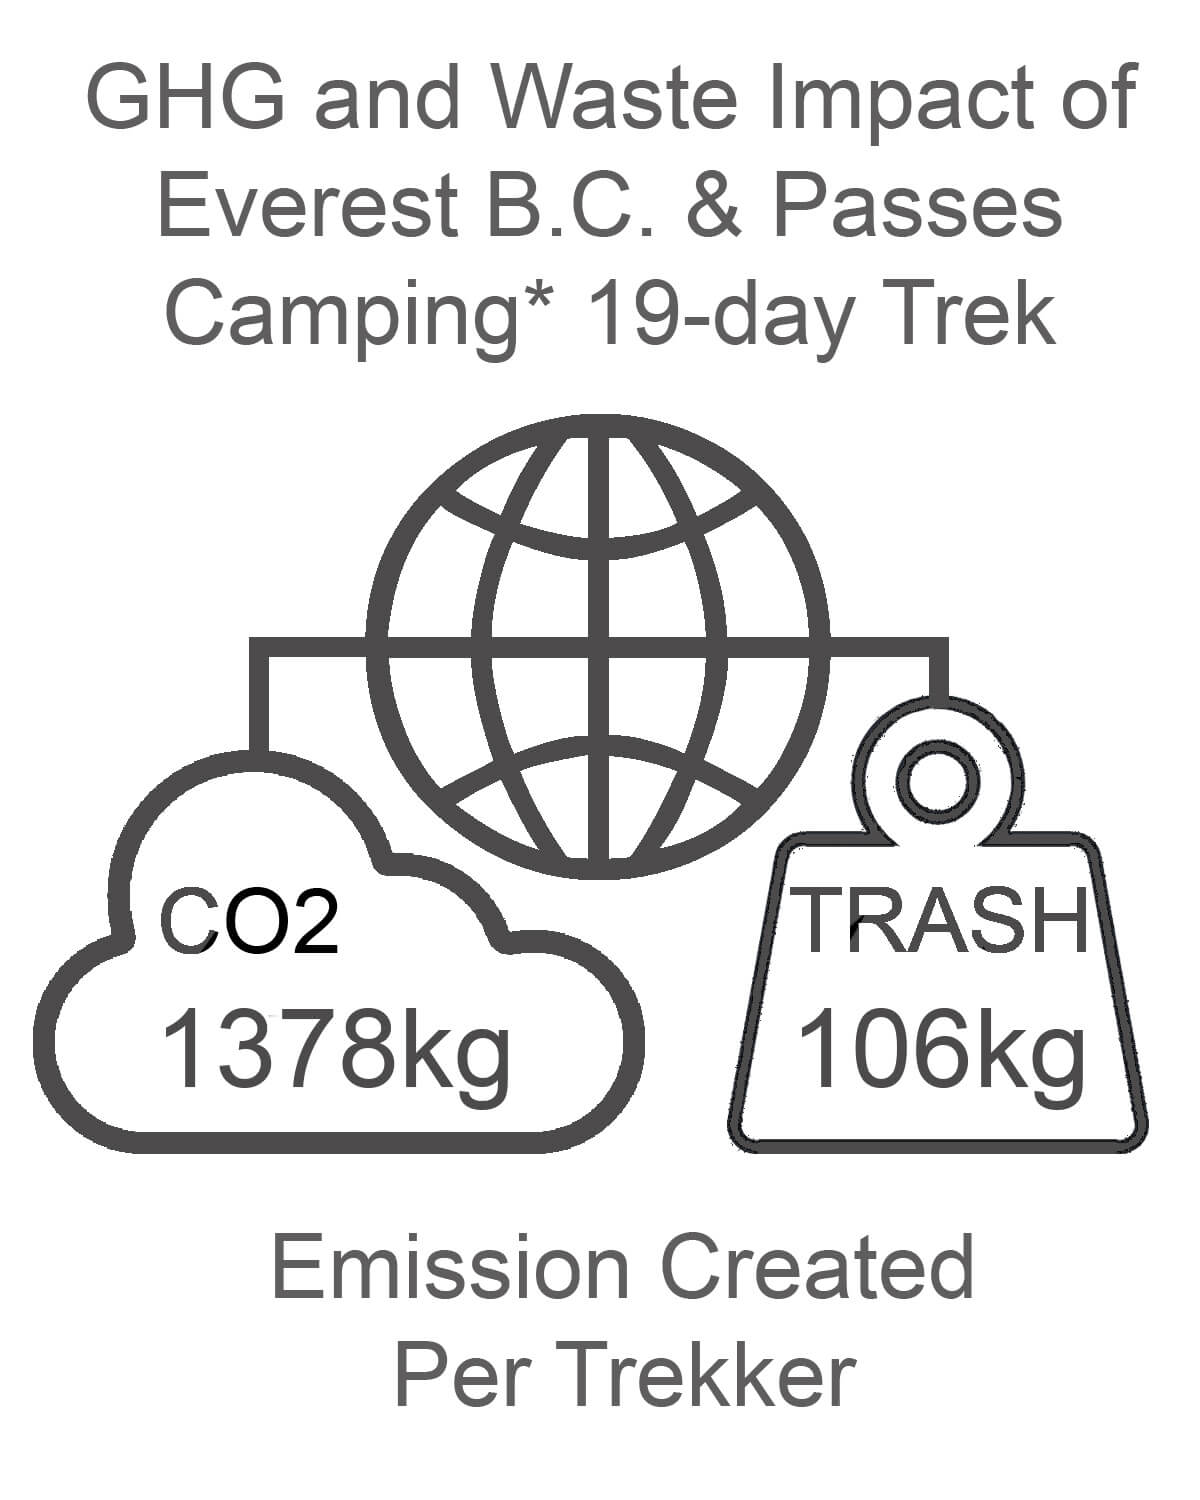 Everest Base Camp and Passes GHG and Waste Impact CAMPING